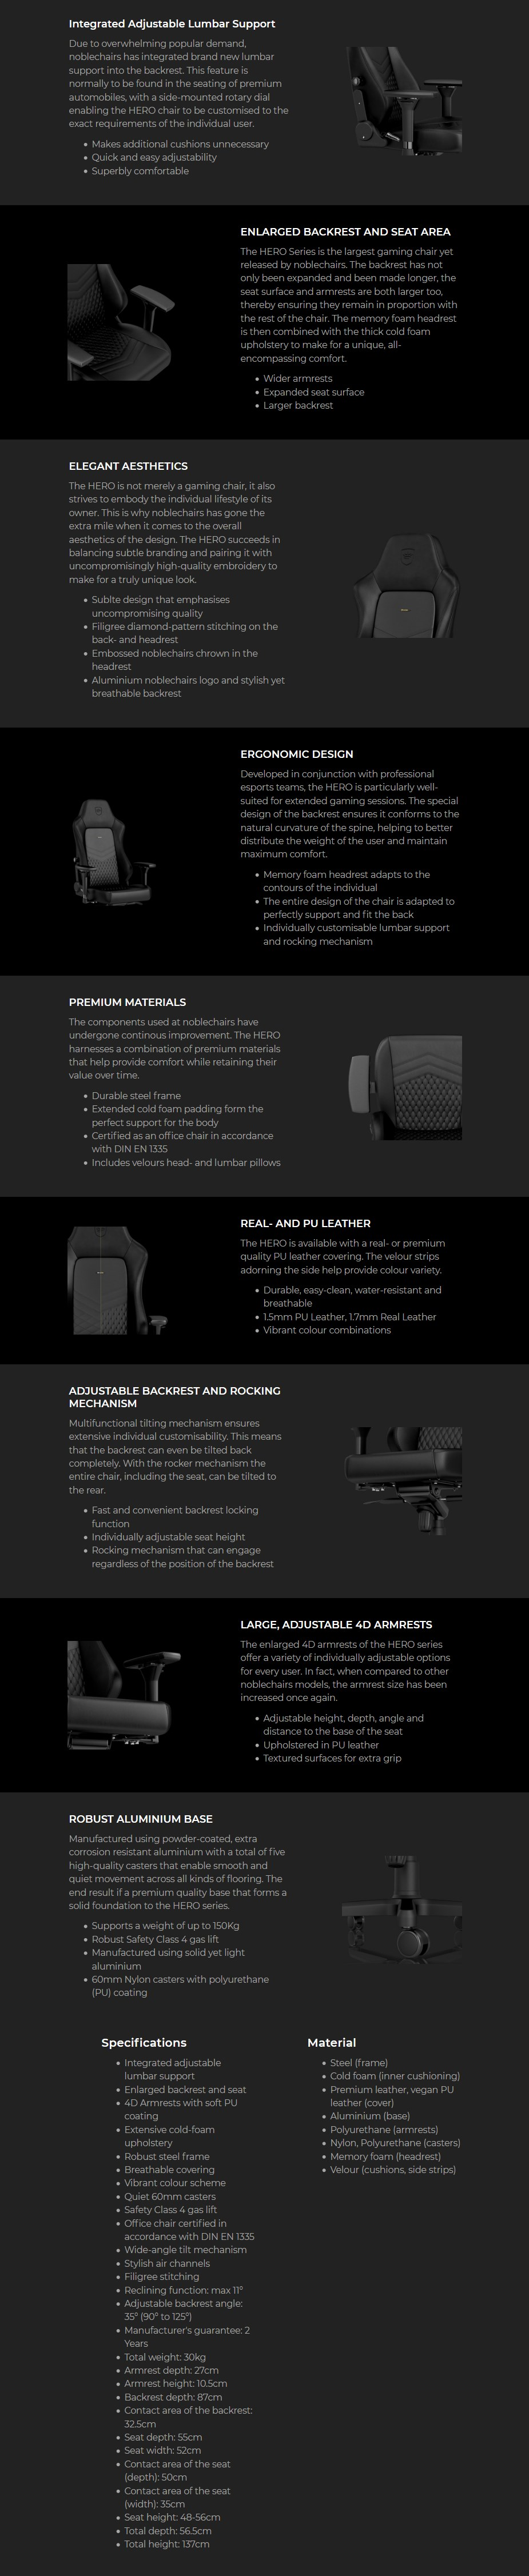 noblechairs HERO PU Leather Gaming Chair - ENCE Edition - Overview 1